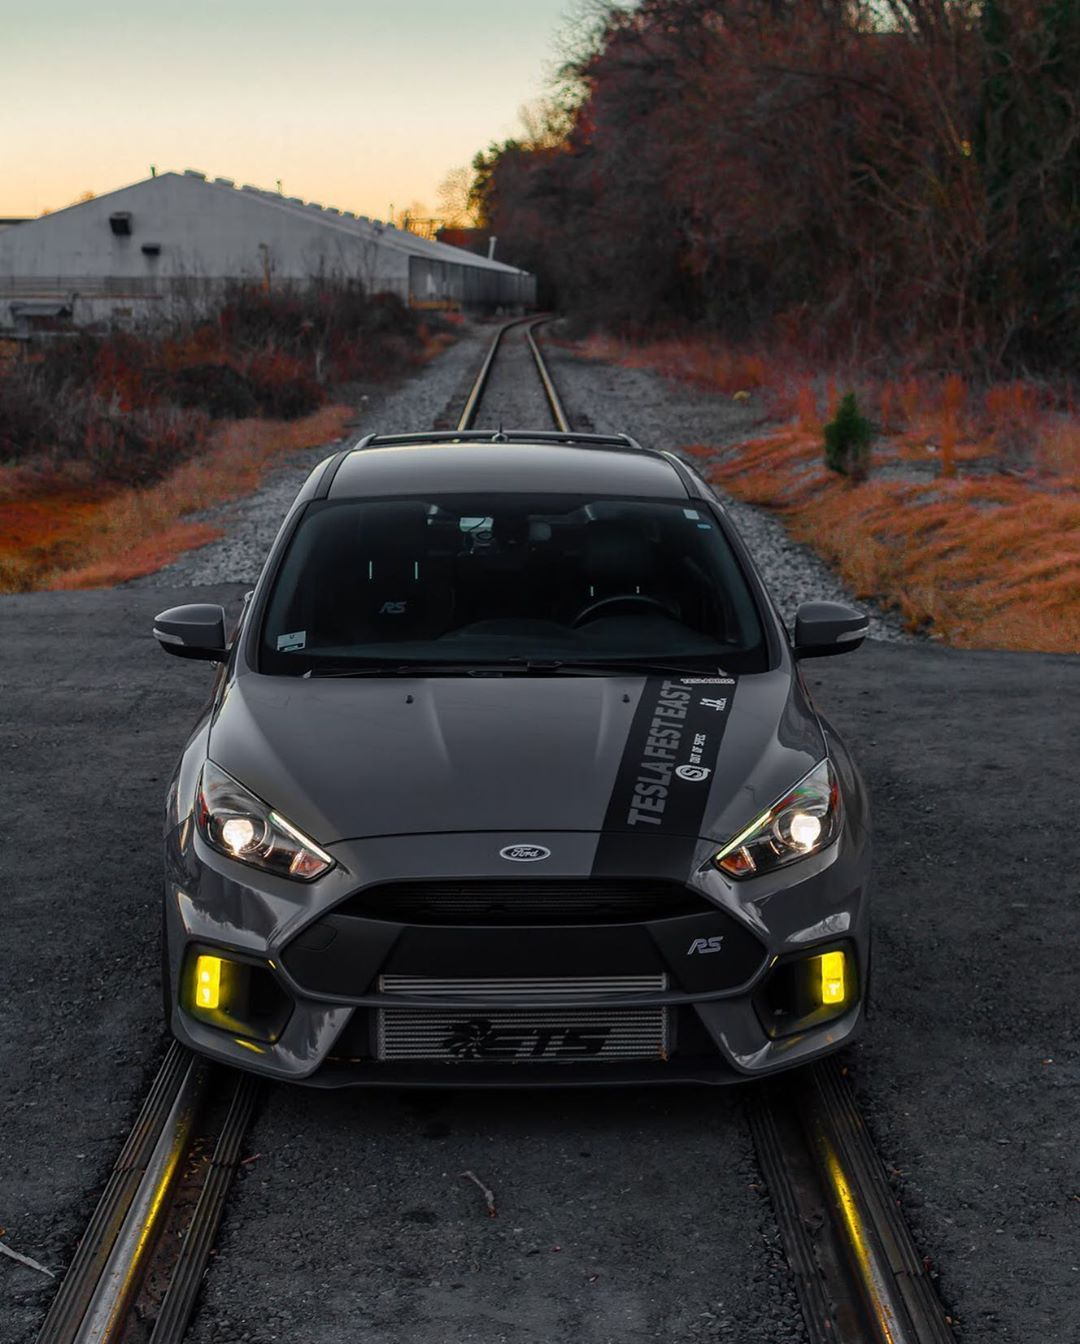 Mi Piace 1 213 Commenti 3 Ford Focus Rs Ford Focus Rs Su Instagram Ets Stealth Mk3 Rs Tipsyme Ford Focus Rs Ford Focus Hatchback Ford Rs